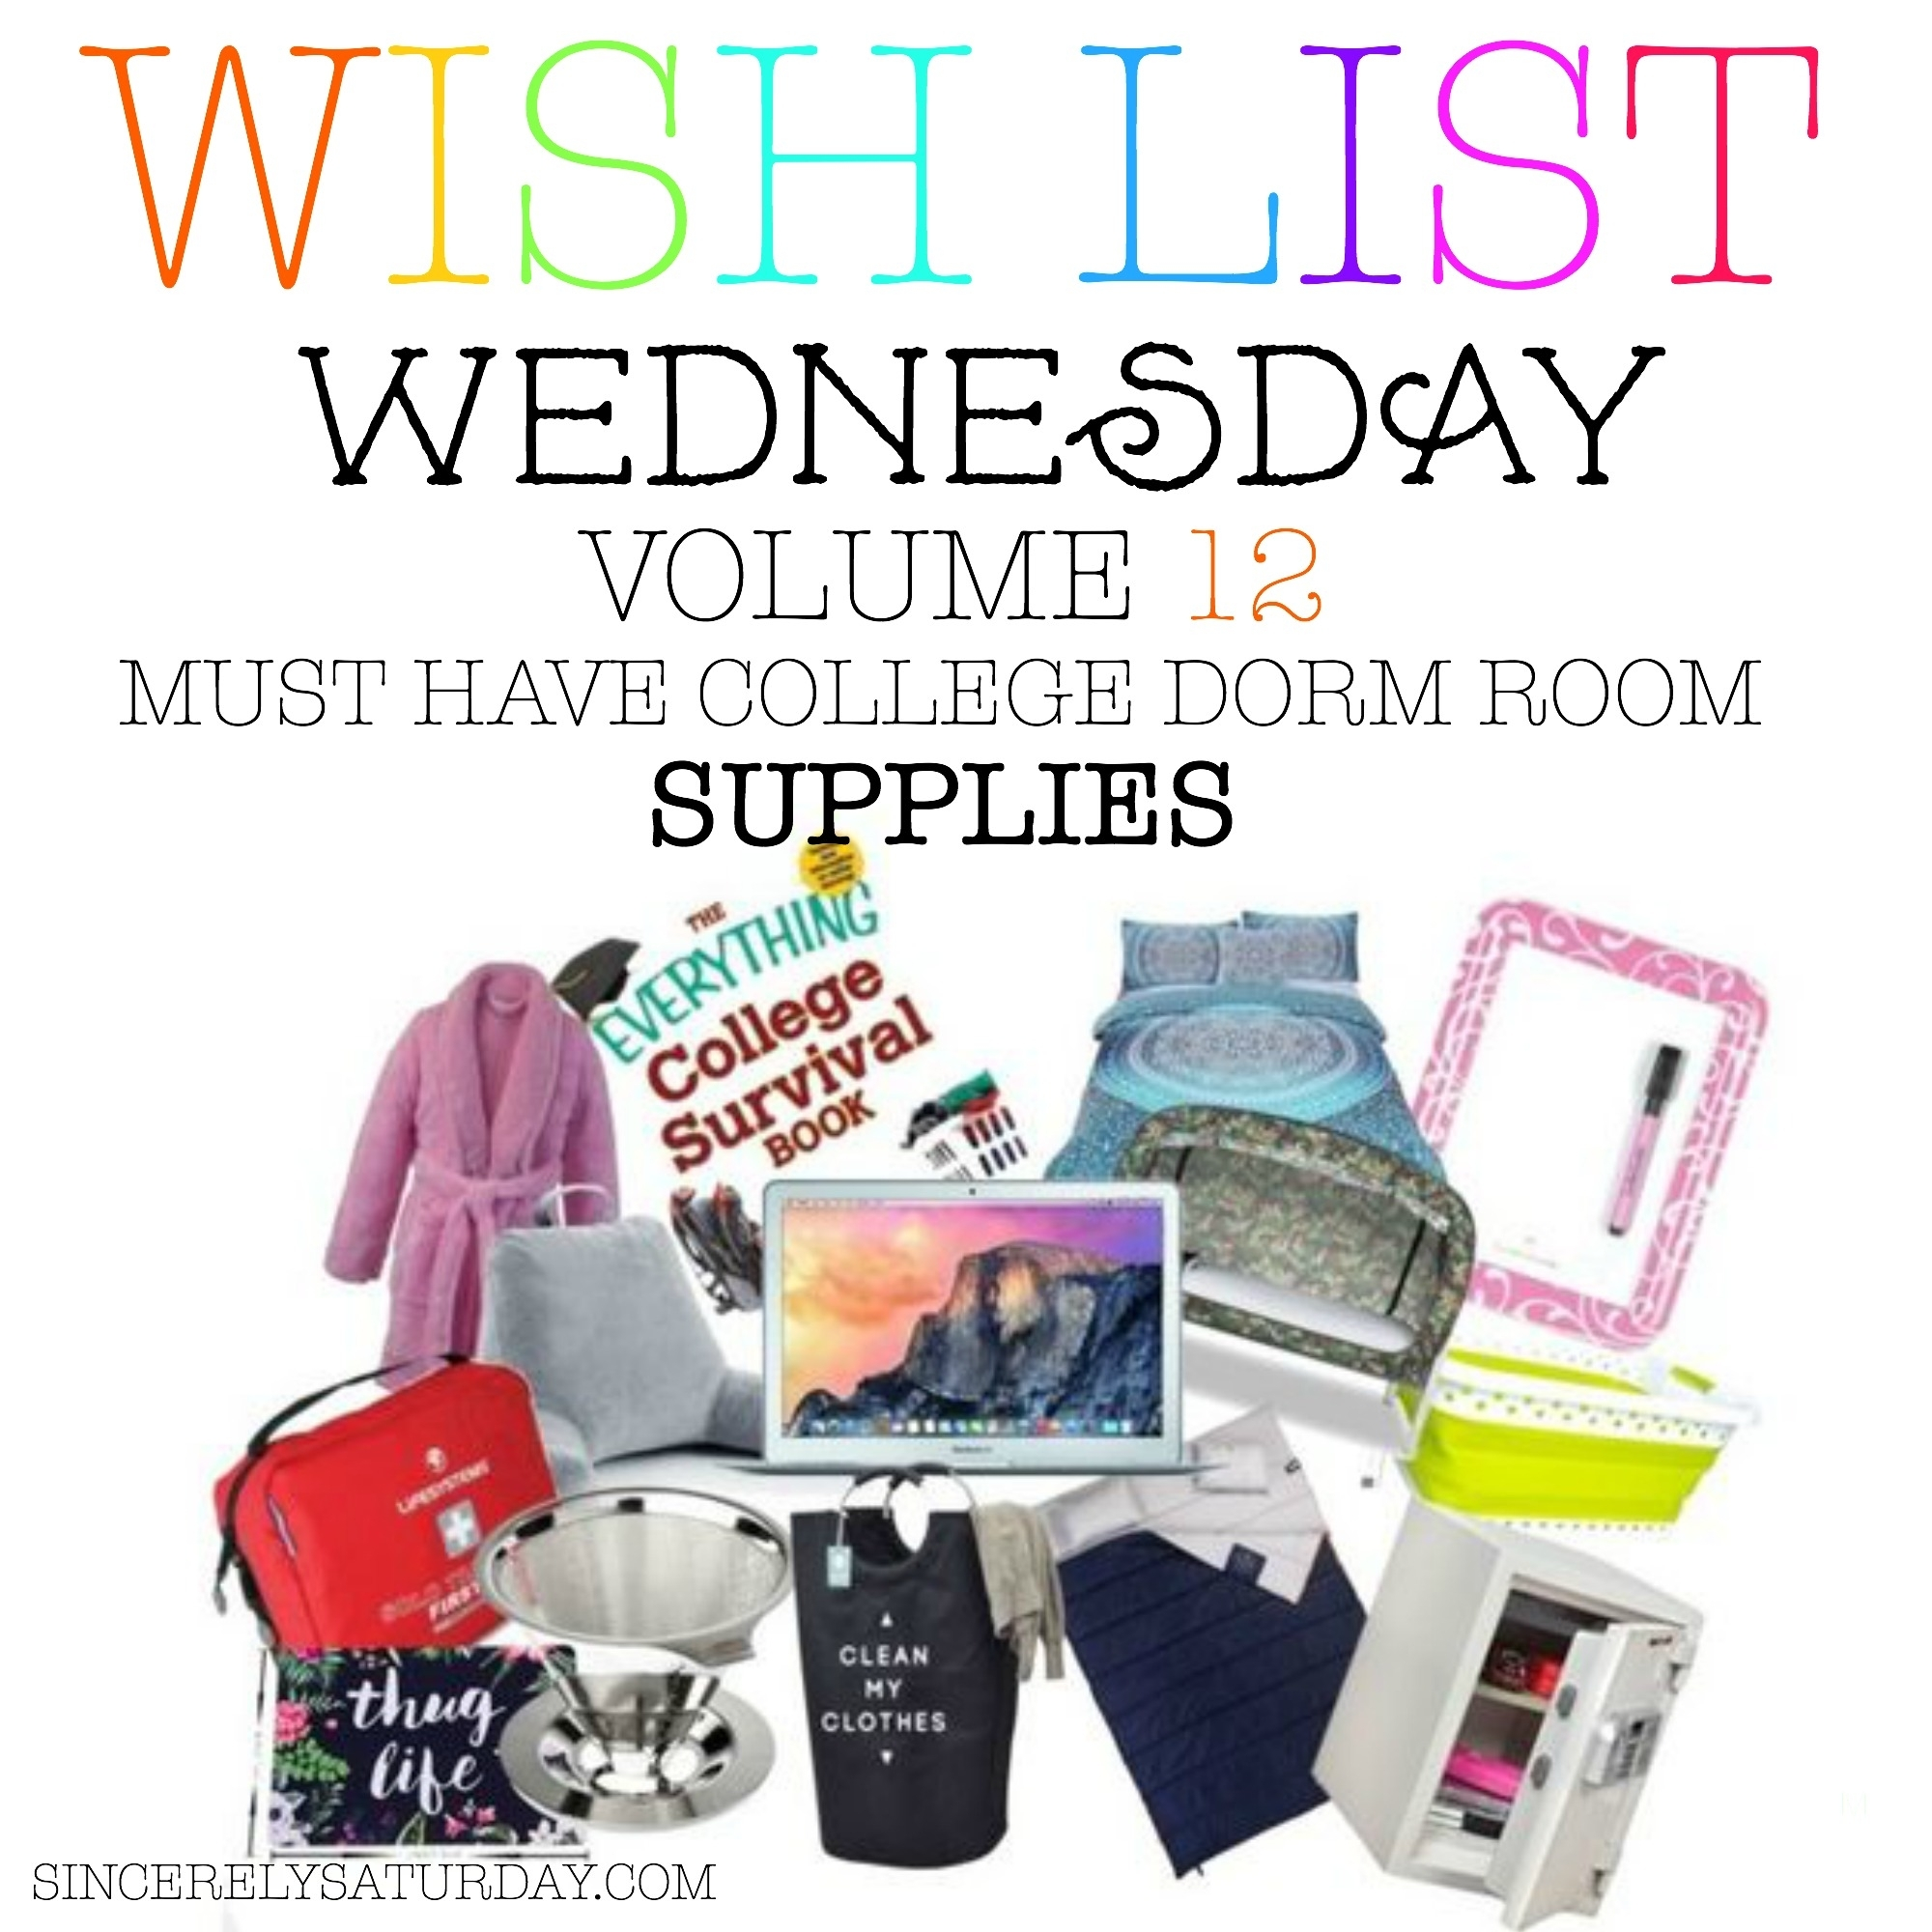 MUST HAVE COLLEGE DORM ROOM SUPPLIES   WISH LIST WEDNESDAY #12 | Sincerely  Saturday Part 44